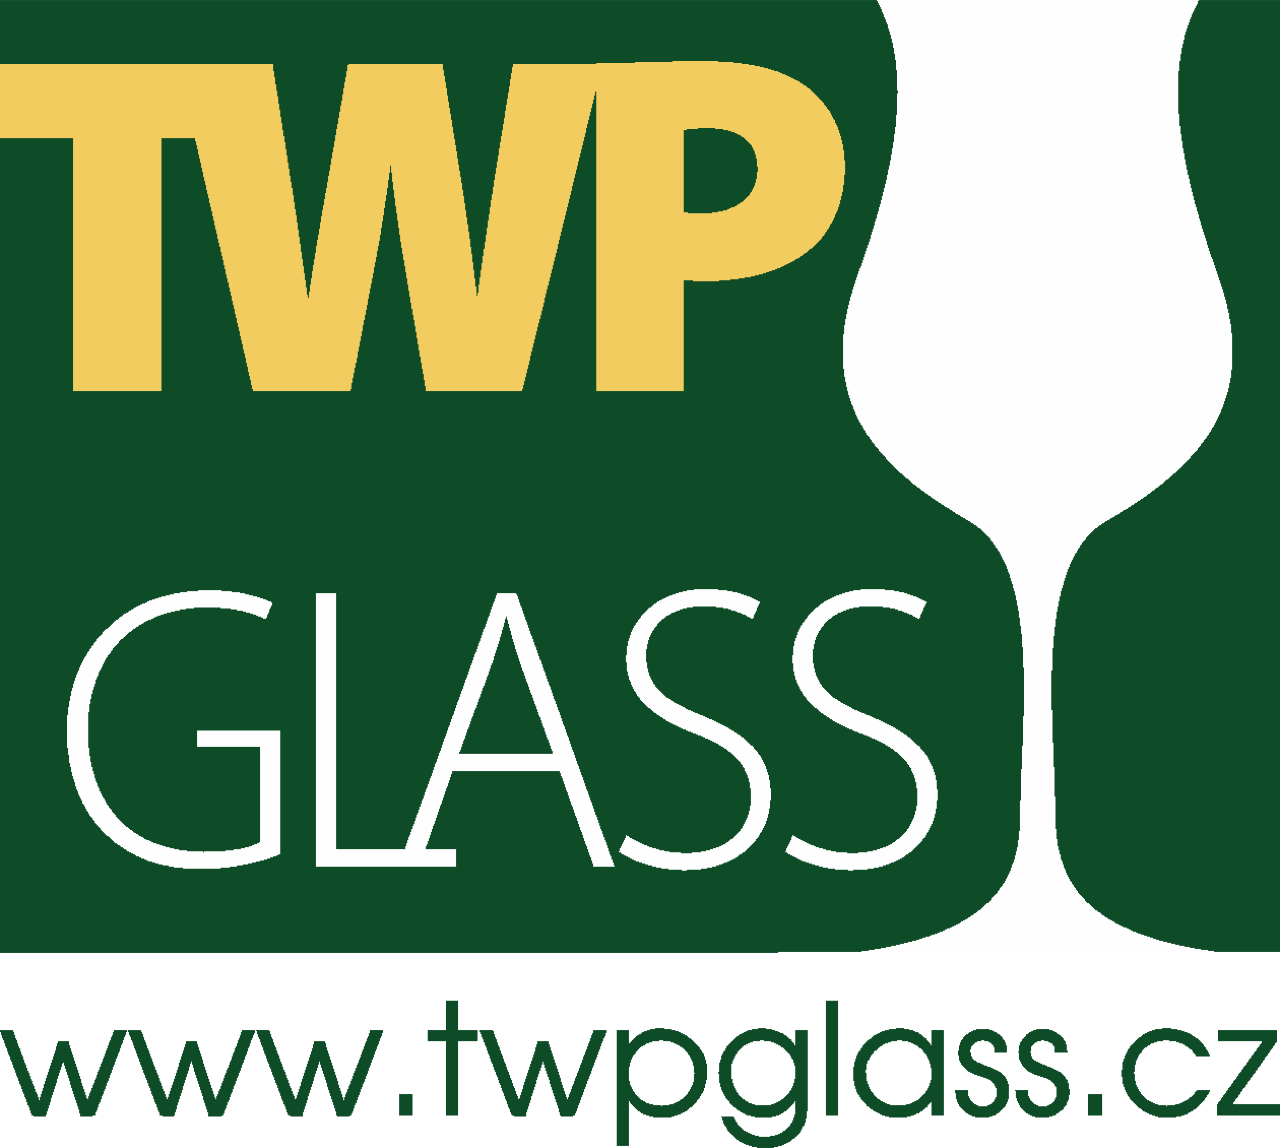 TWP GLASS